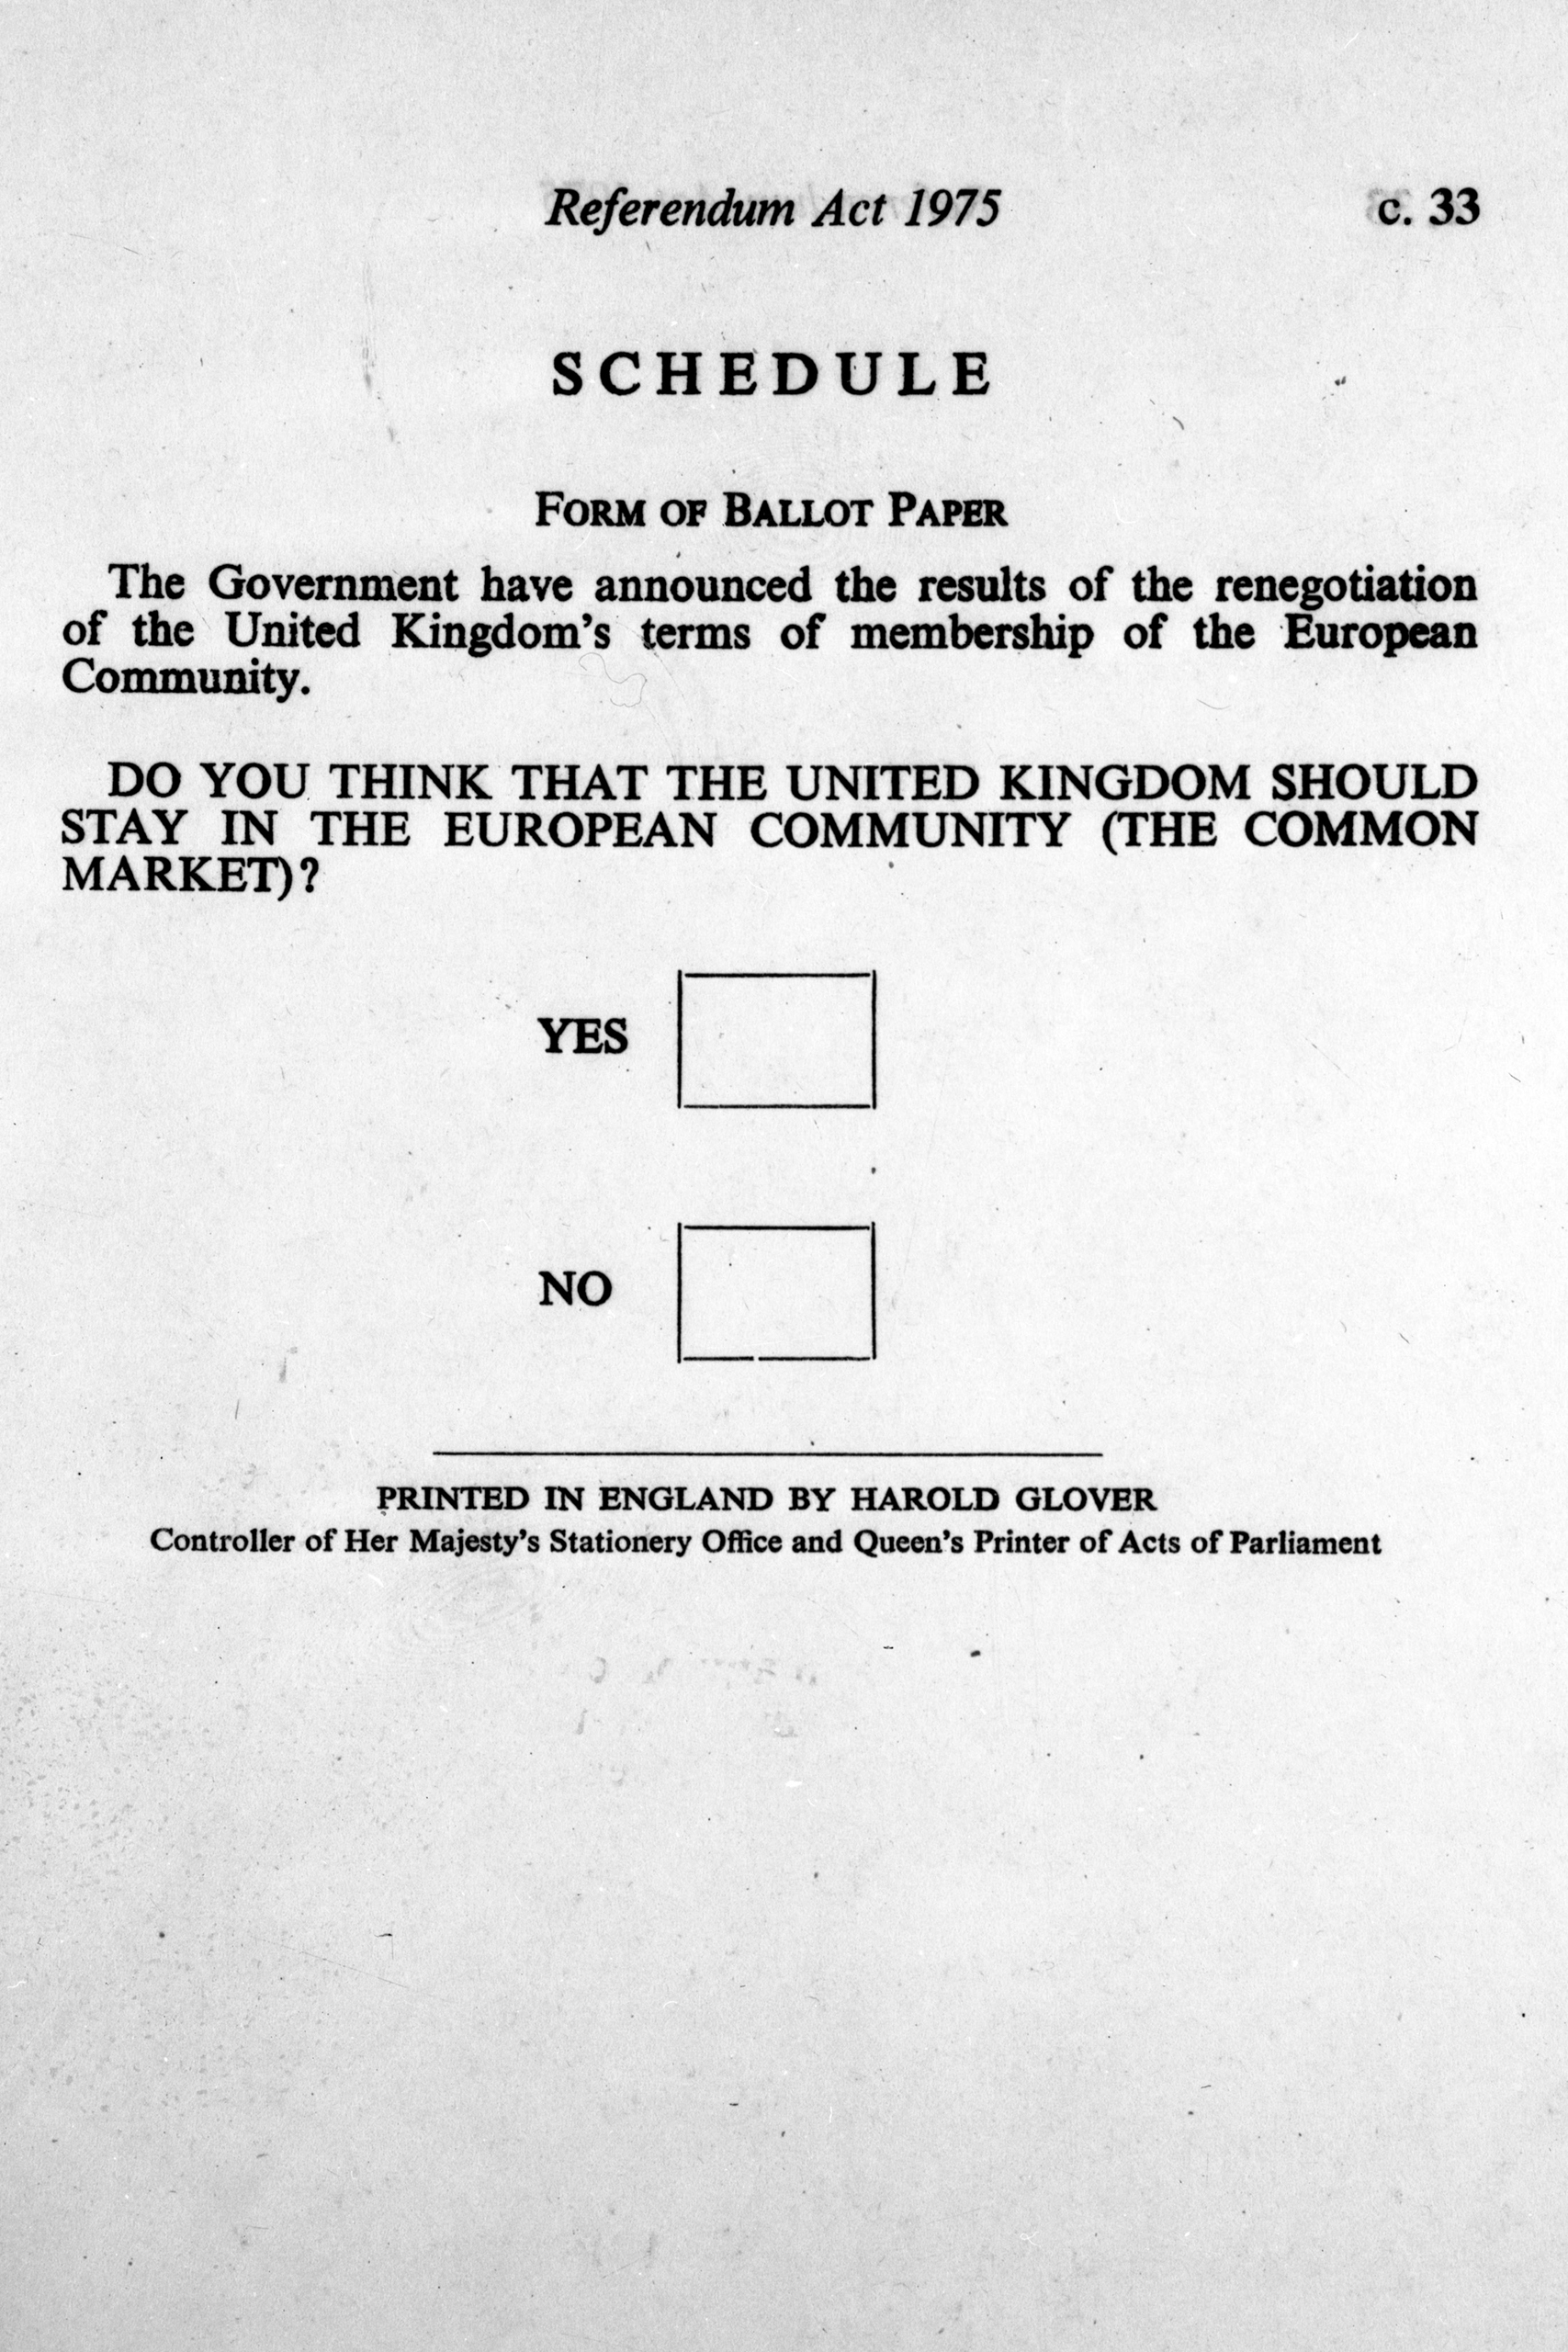 A picture of the schedule to the Referendum Act, which lays down the form of words to be used on the ballot paper. 1975.